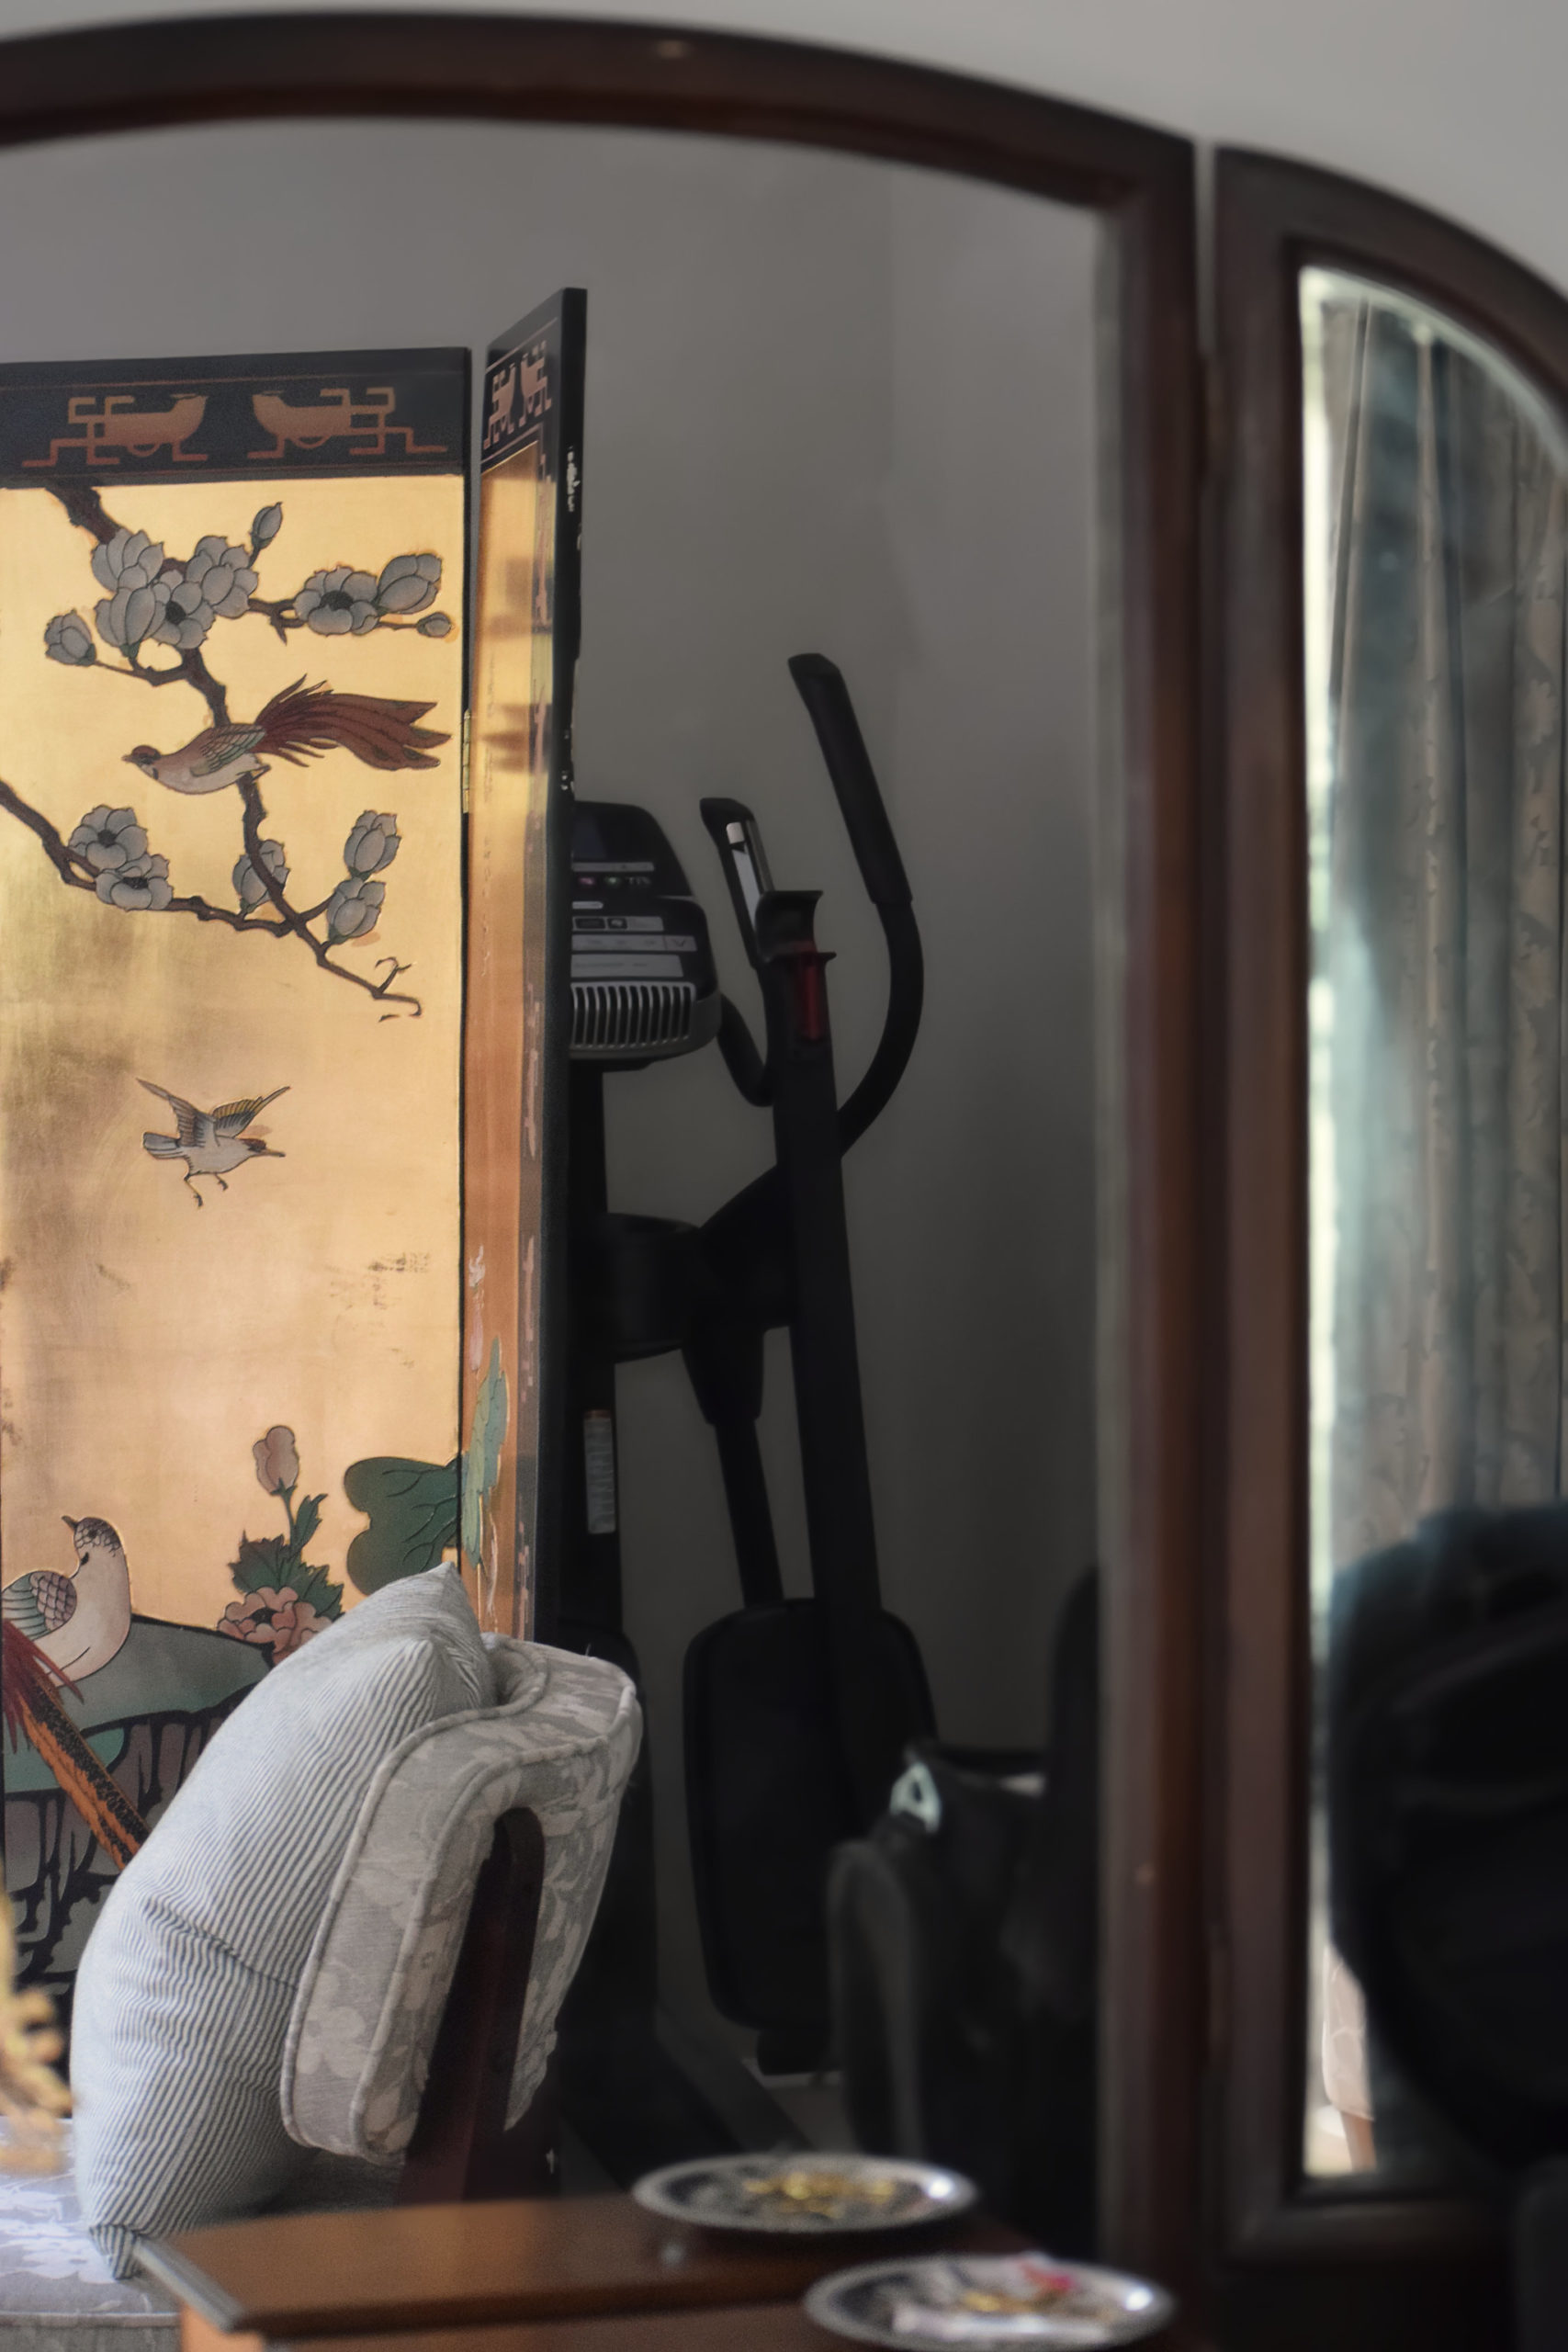 reflection showing elliptical hidden behind chinoiserie screen